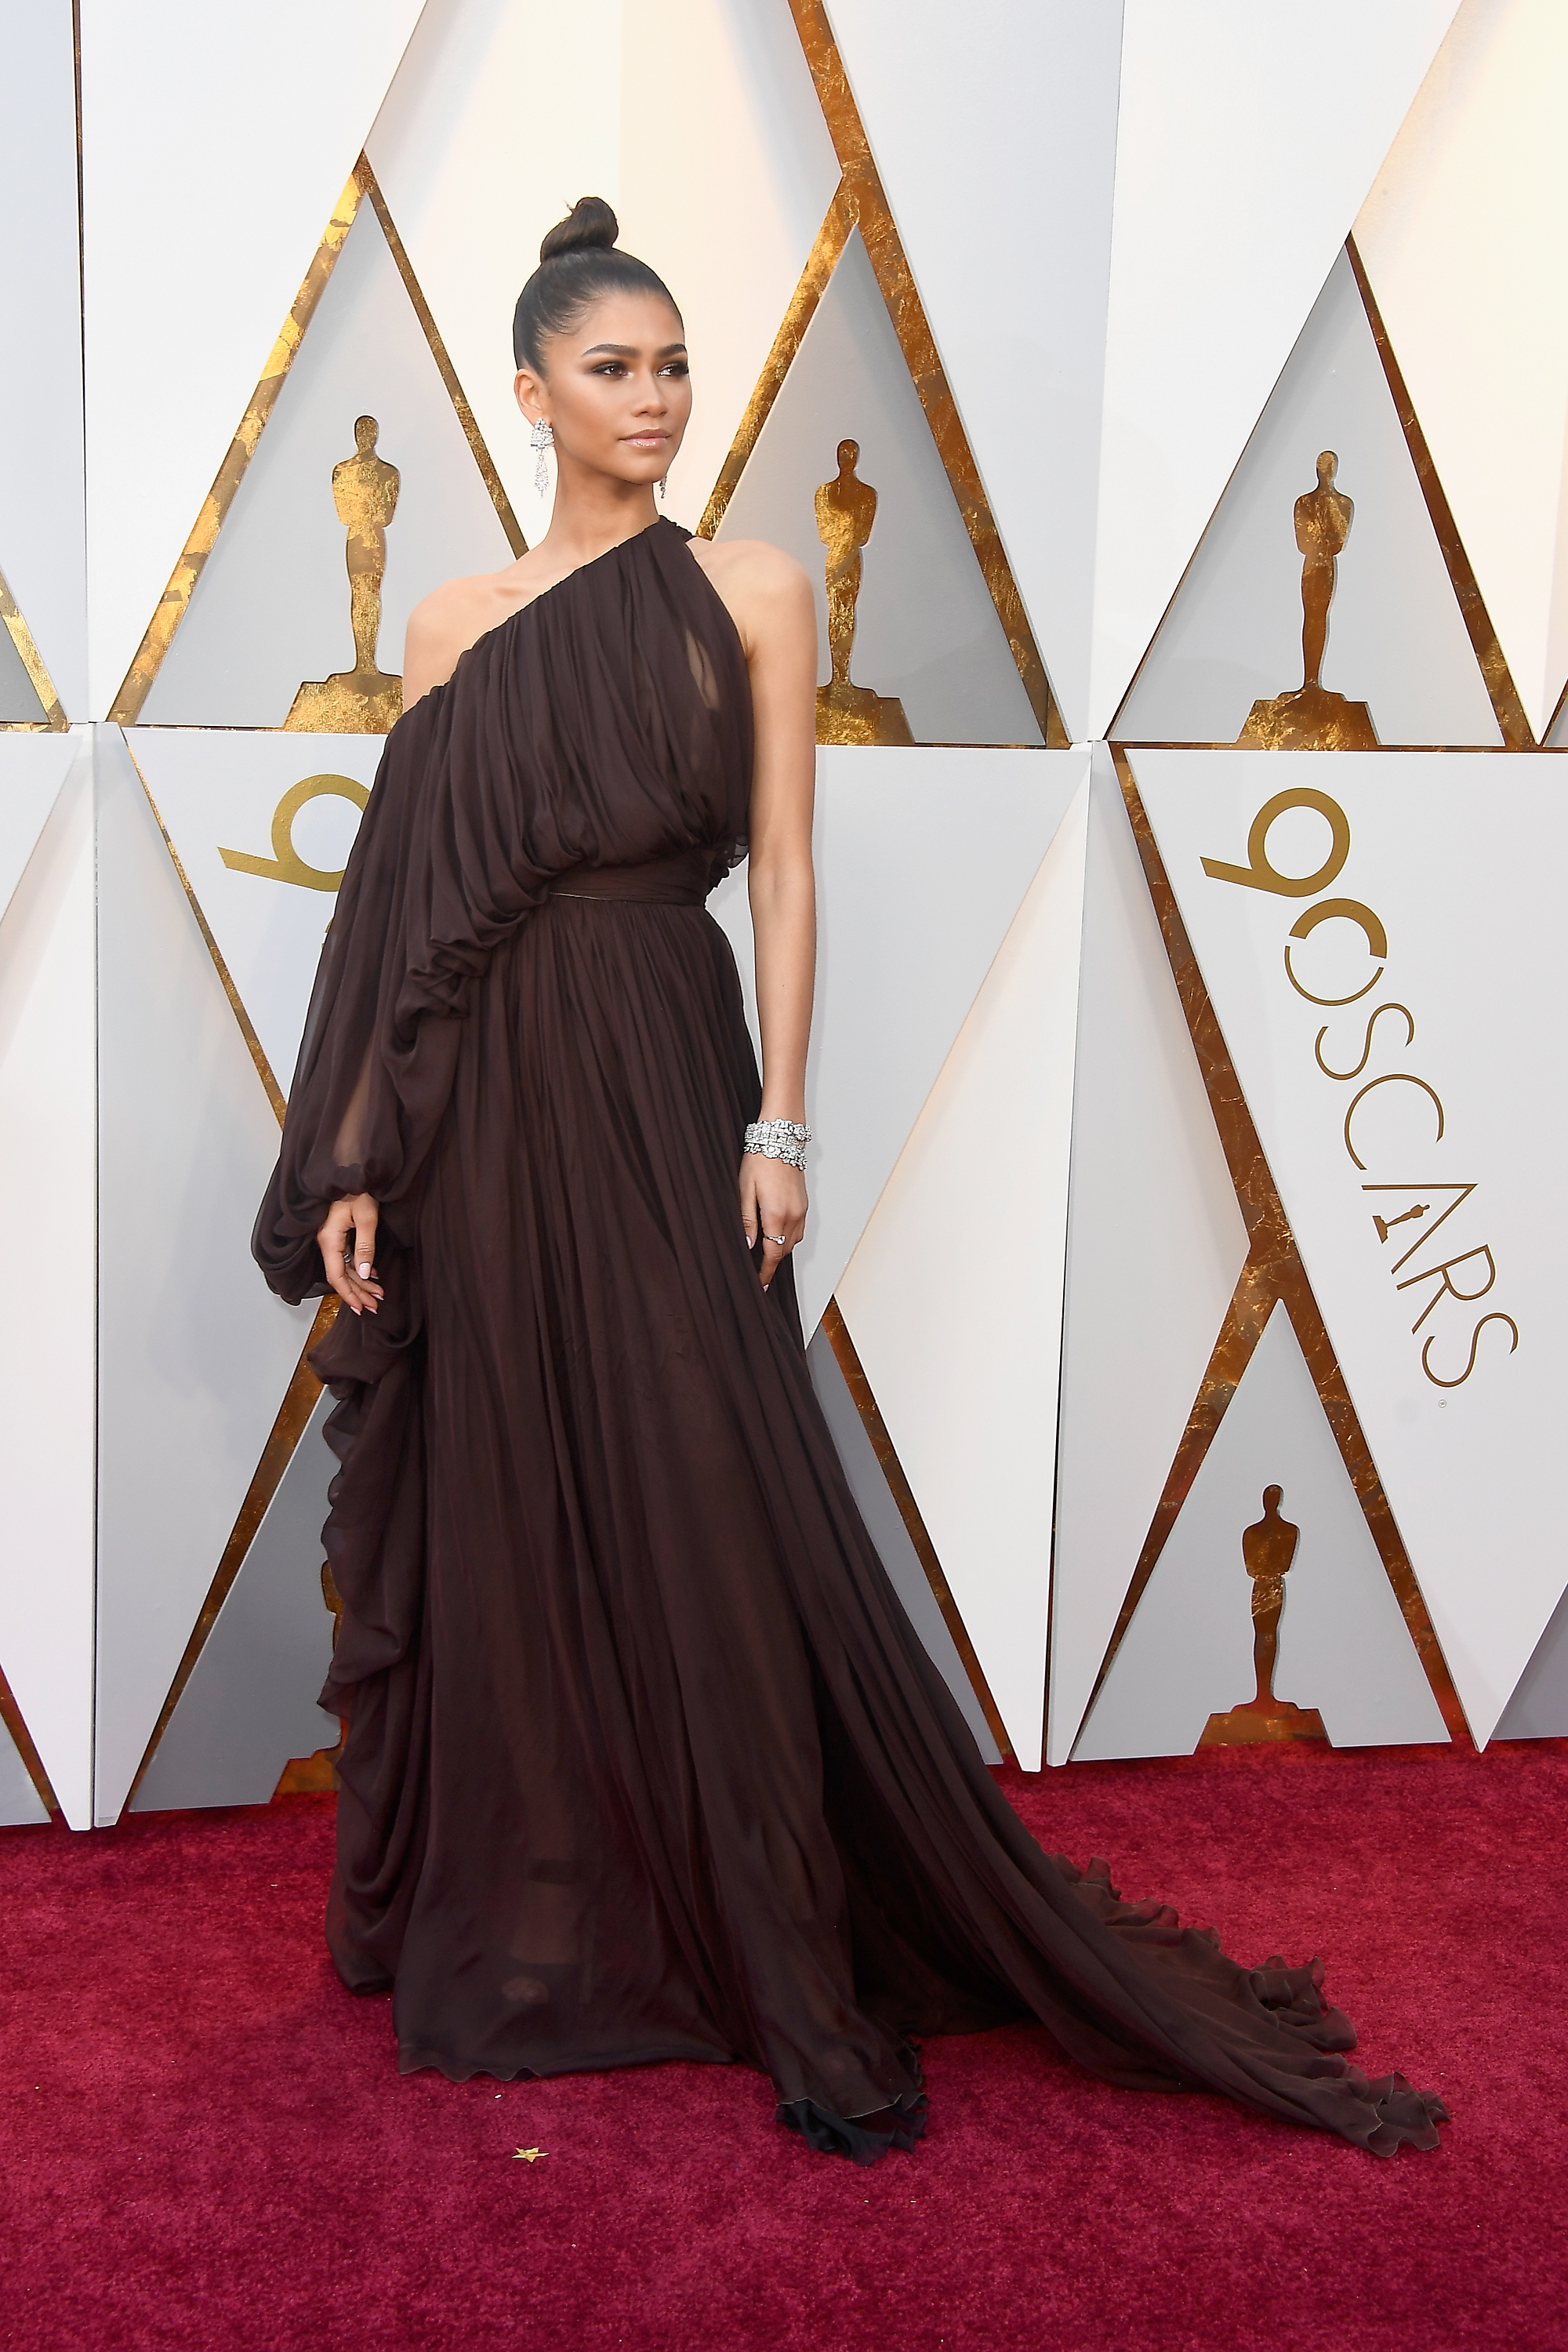 HOLLYWOOD, CA - MARCH 04:  Zendaya attends the 90th Annual Academy Awards at Hollywood & Highland Center on March 4, 2018 in Hollywood, California.  (Photo by Frazer Harrison/Getty Images)